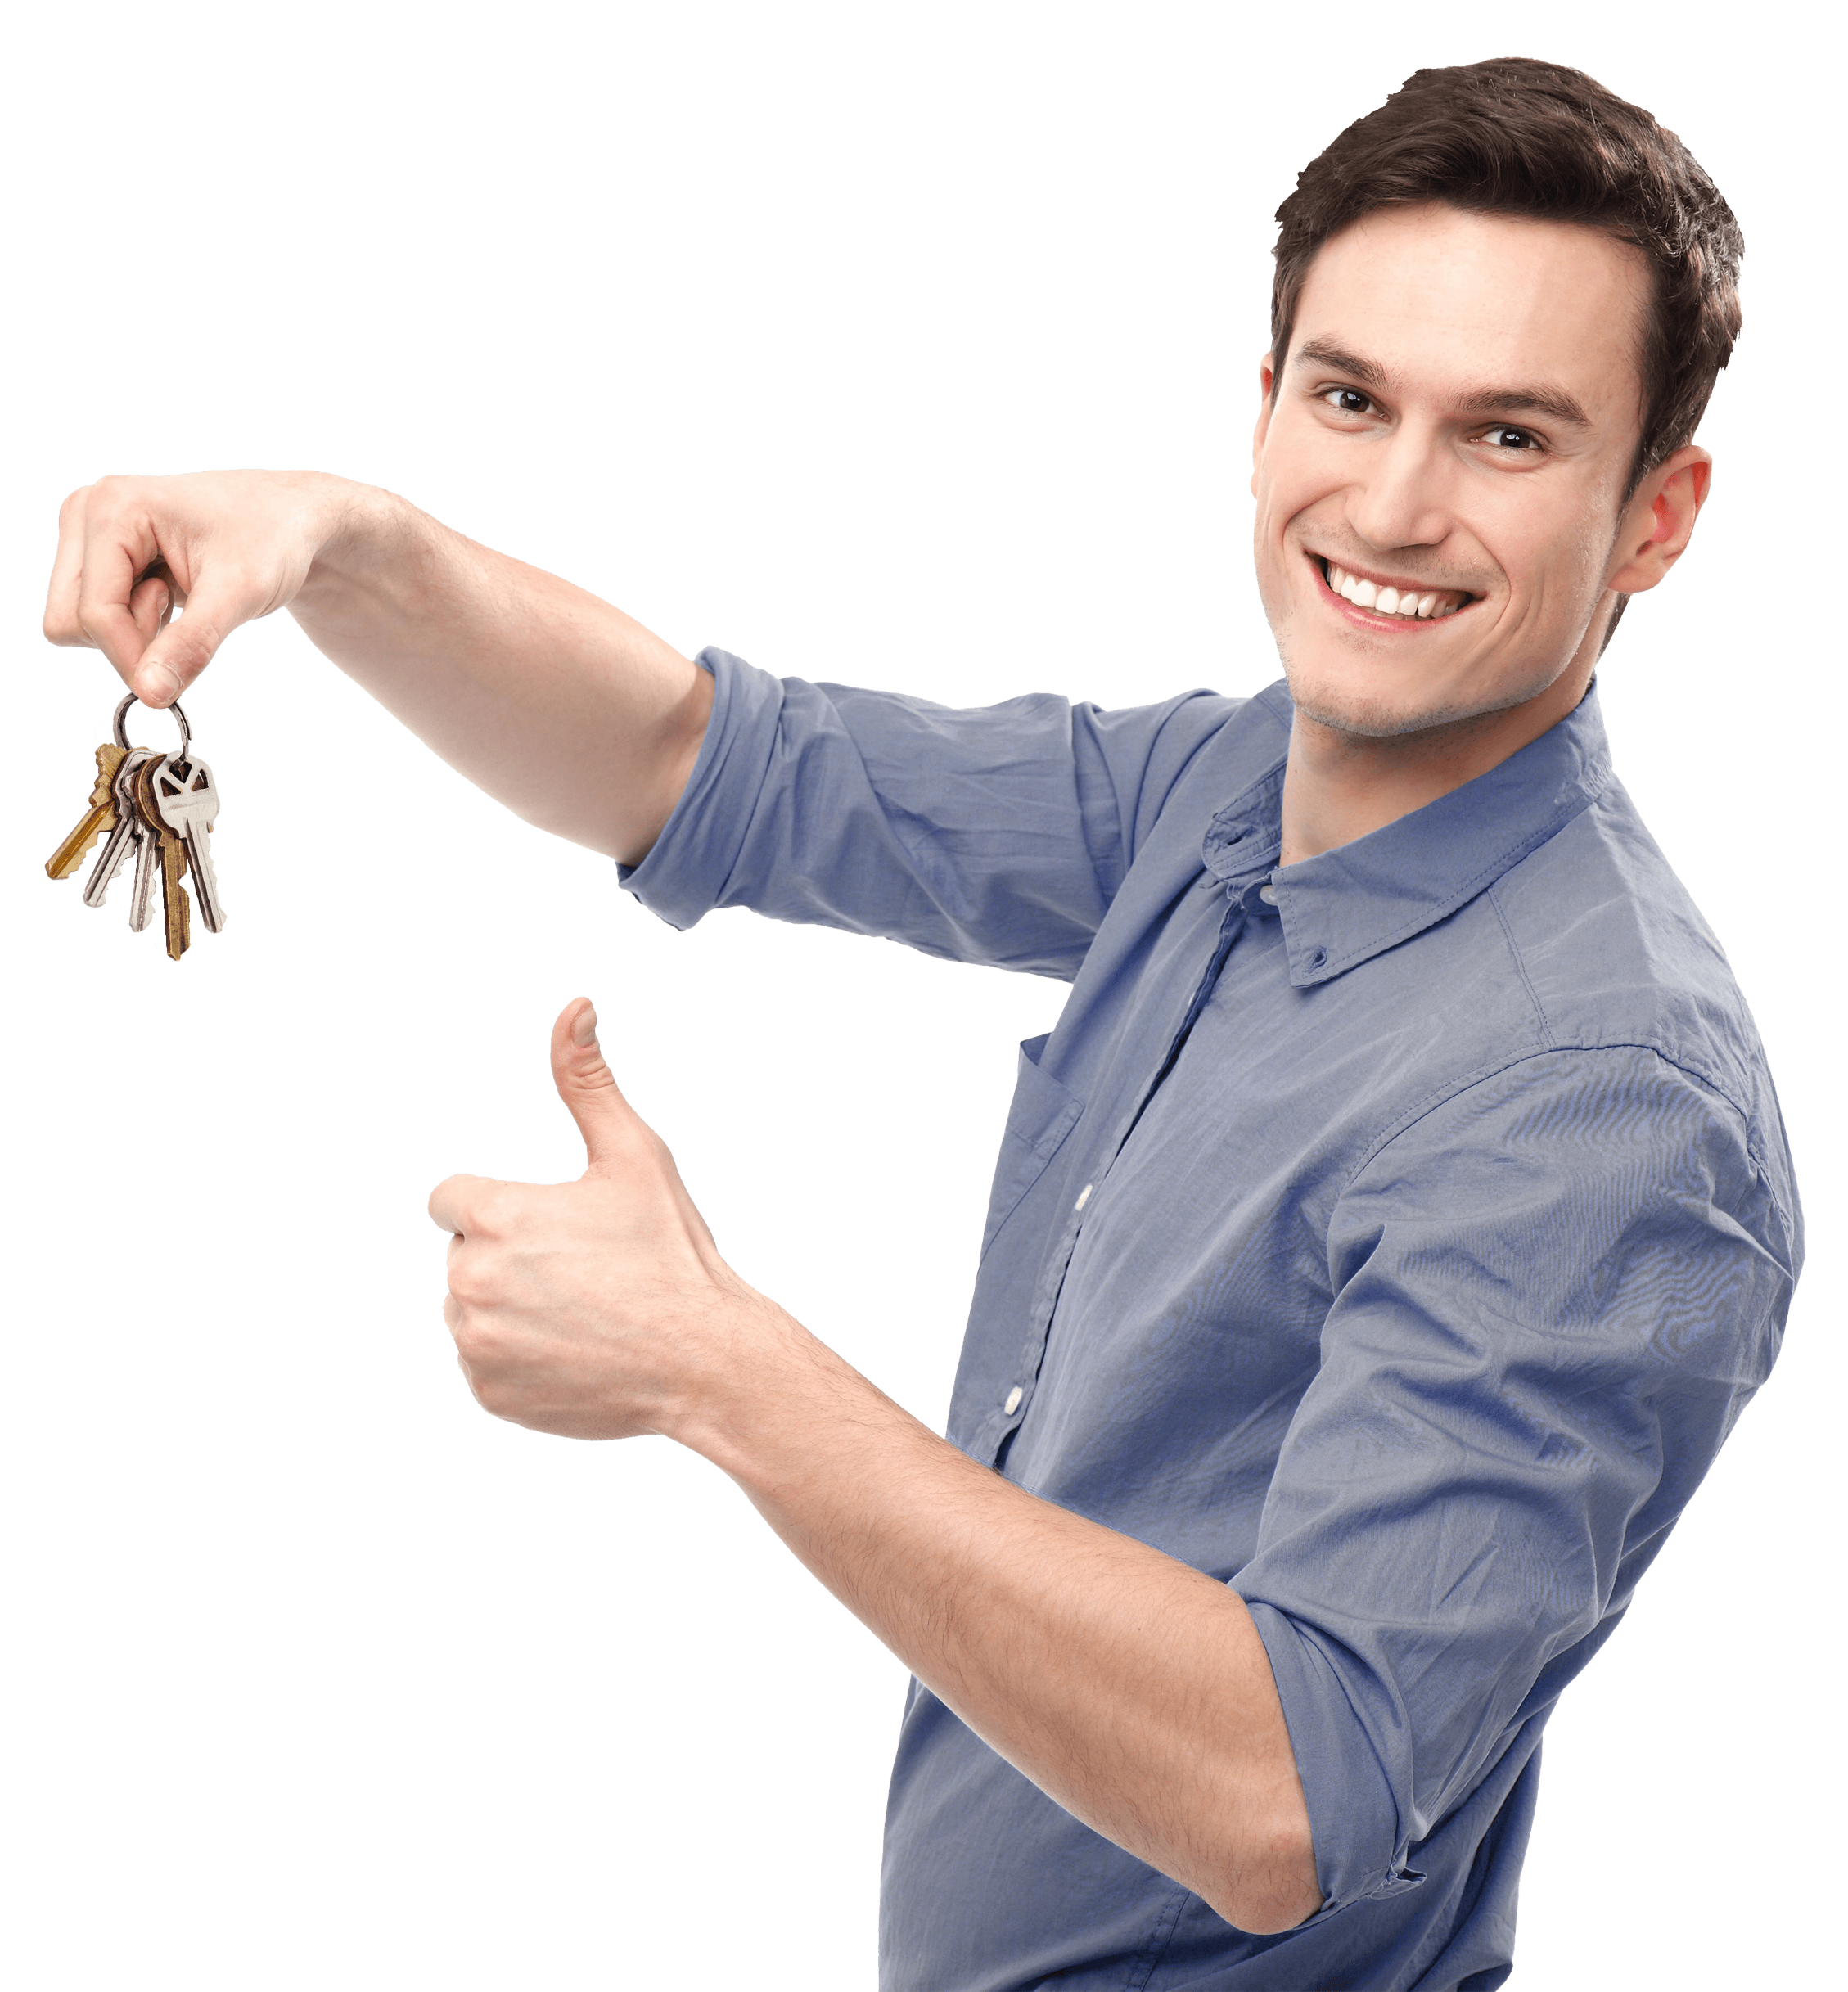 locksmith in winnipeg, mb for re-key services